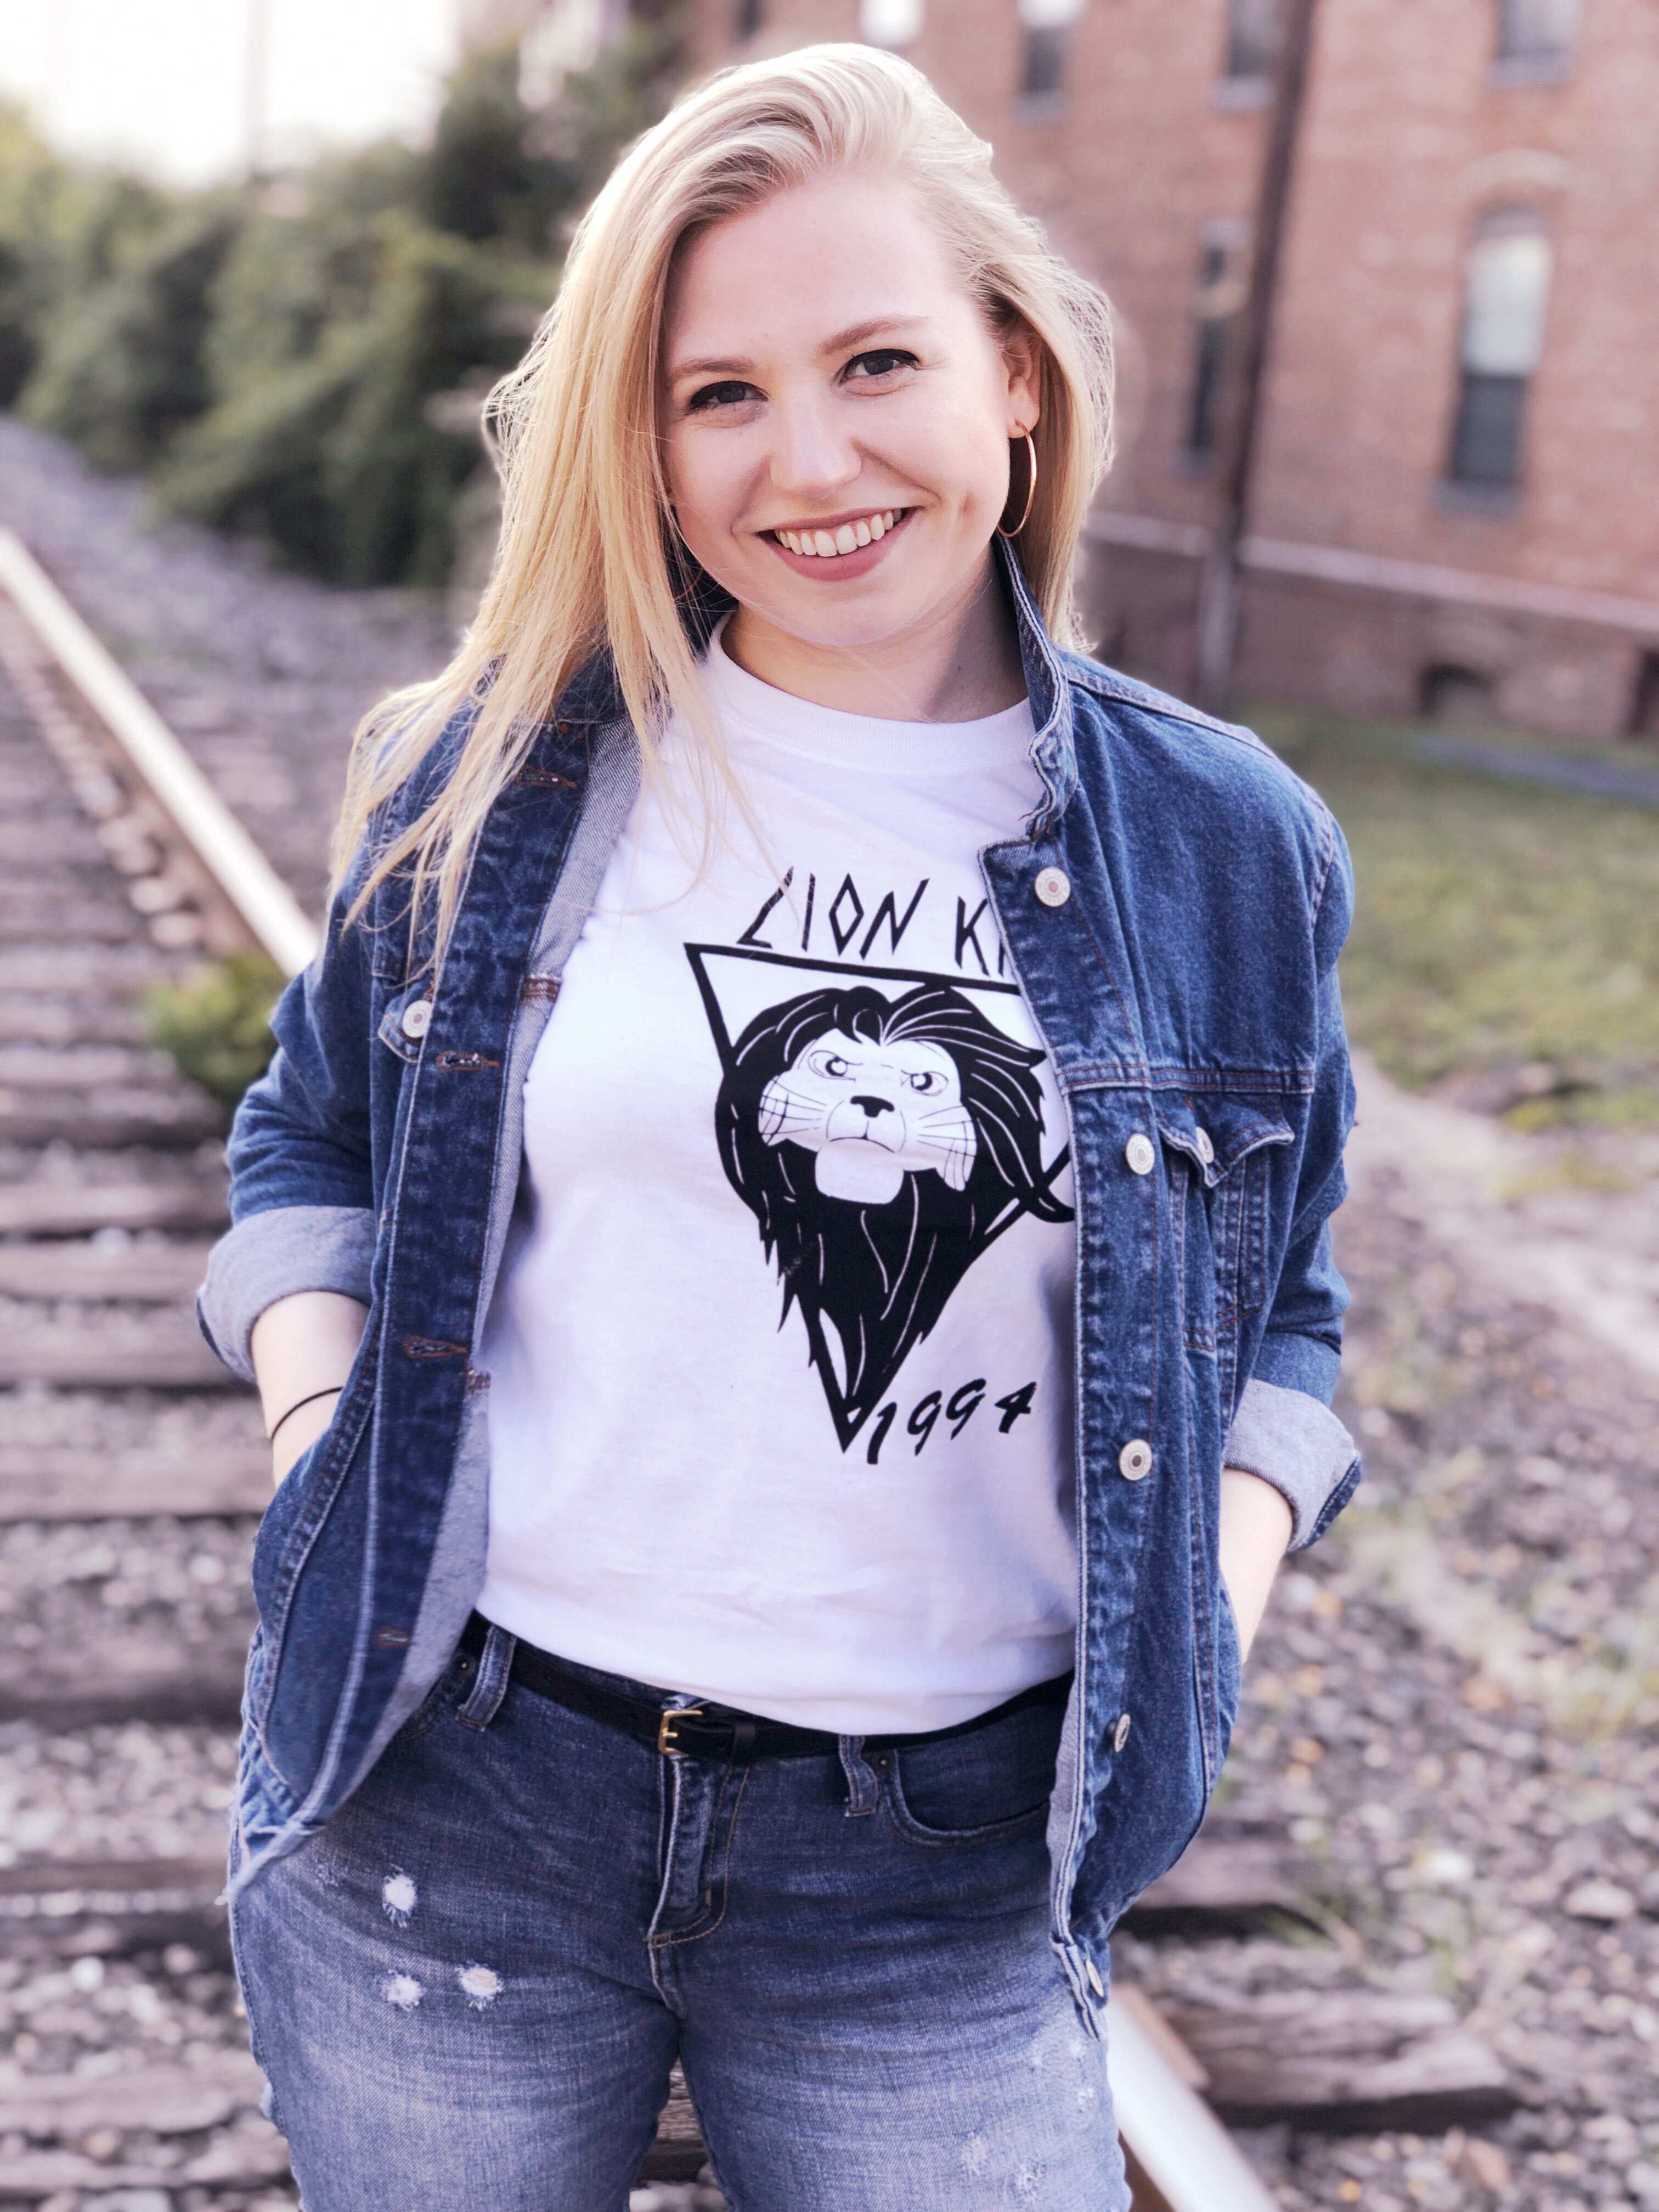 Kelly, the owner and designer behind karma&kismet, is inspired by the magic of Disney and brings a little bit of magic into her designs for individuals, small businesses, and large corporations.